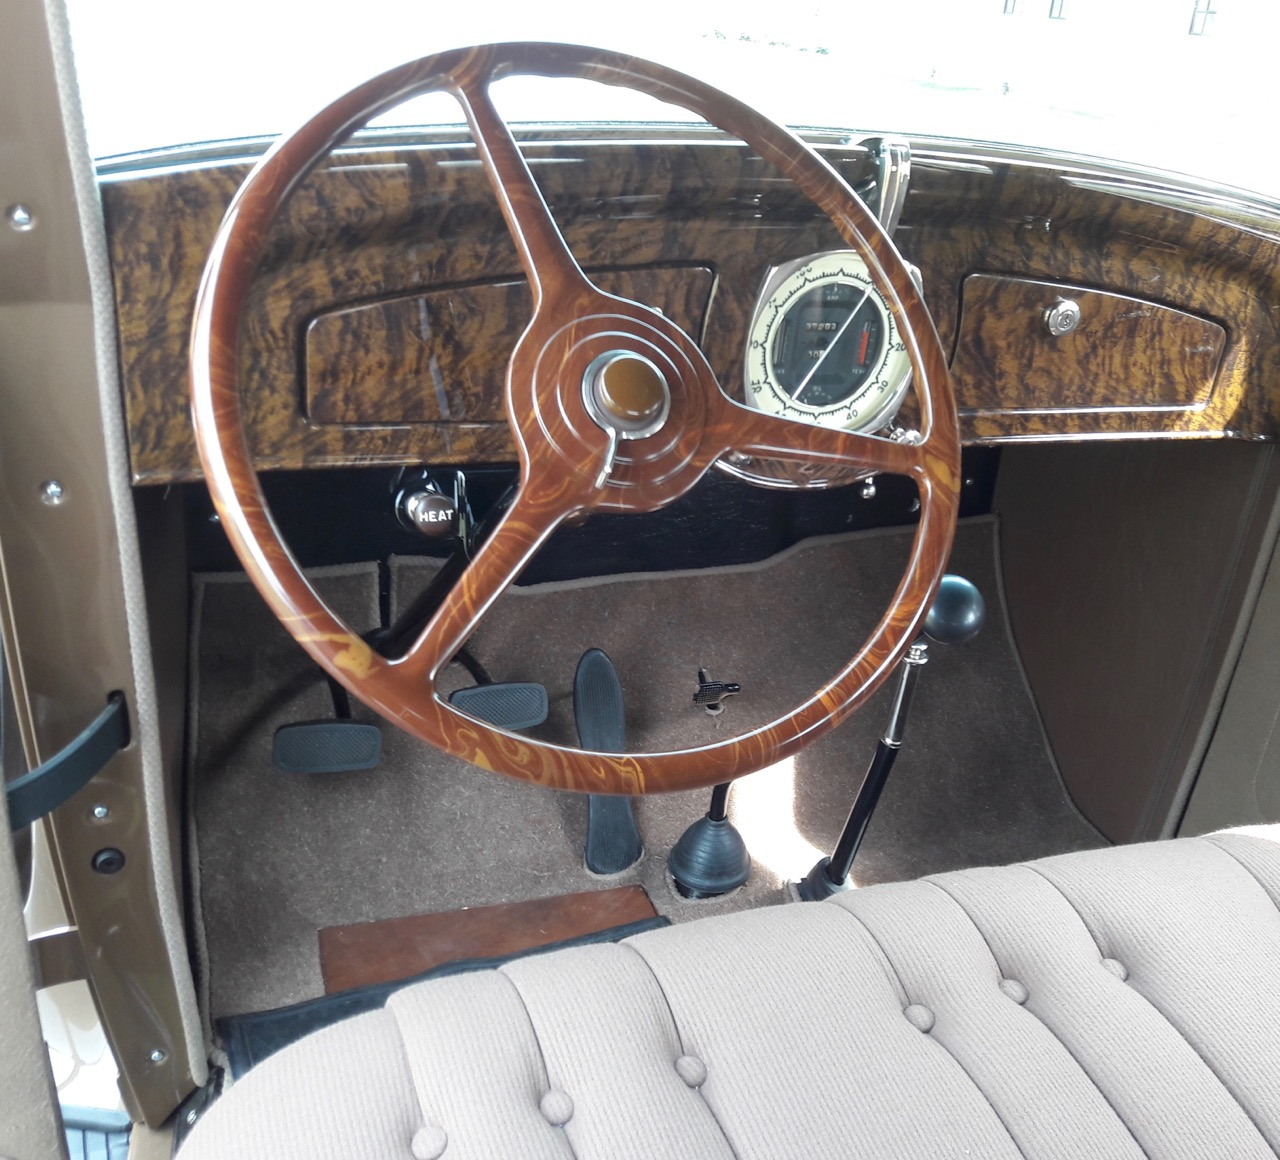 Restoration of the steering wheel is a story in itself